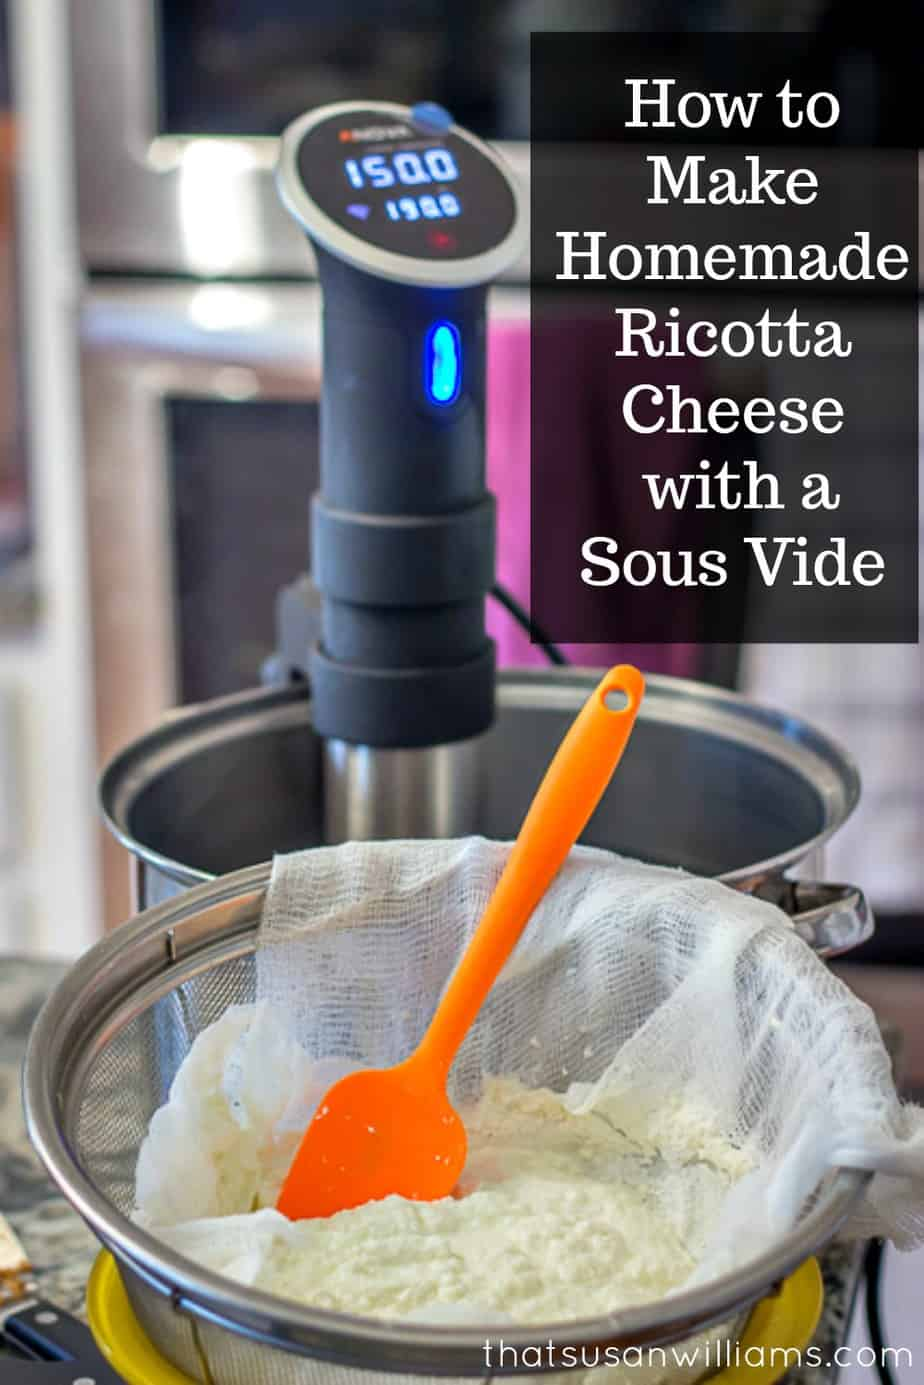 How to Make Homemade Ricotta Cheese with a Sous Vide #ricotta #sousvide #easy #homemade